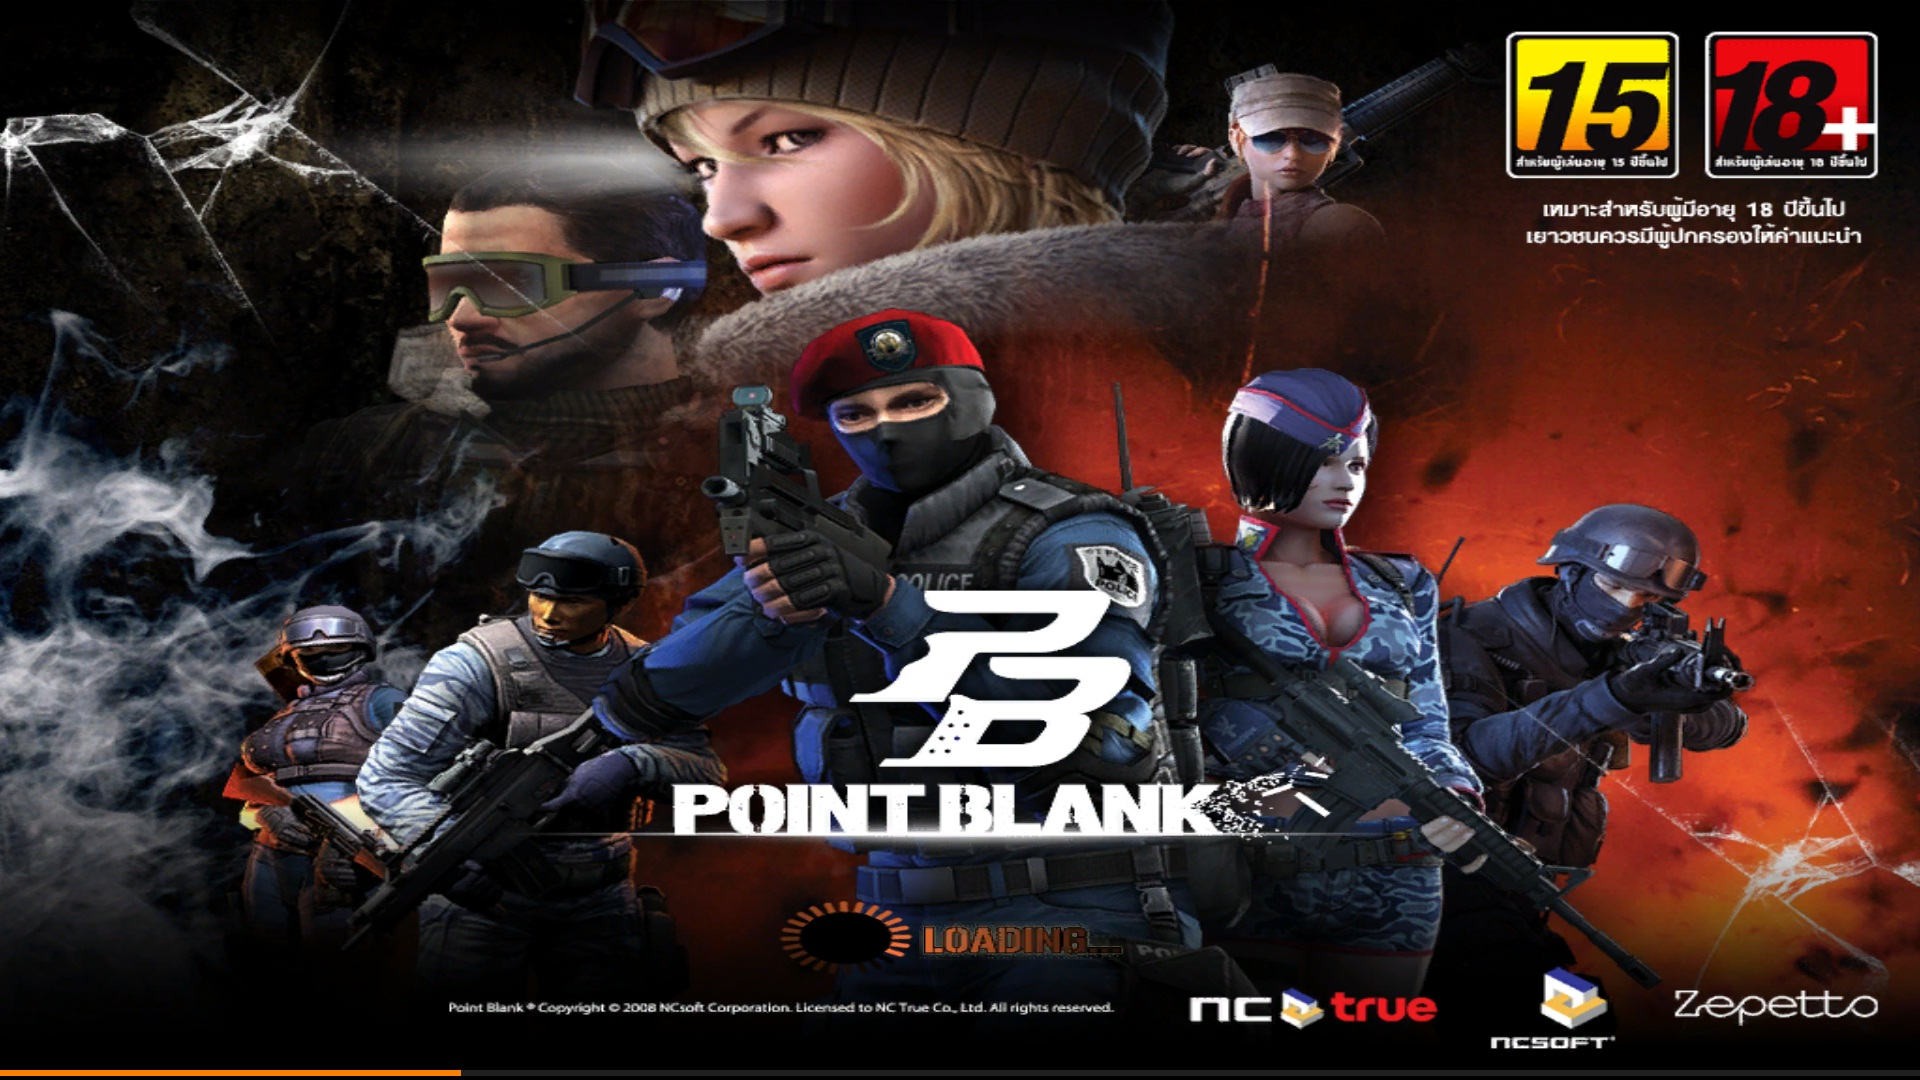 Point Blank Desktop HD Widescreen Wallpaper Point Blank Desktop HD Widesreen Wallpaper